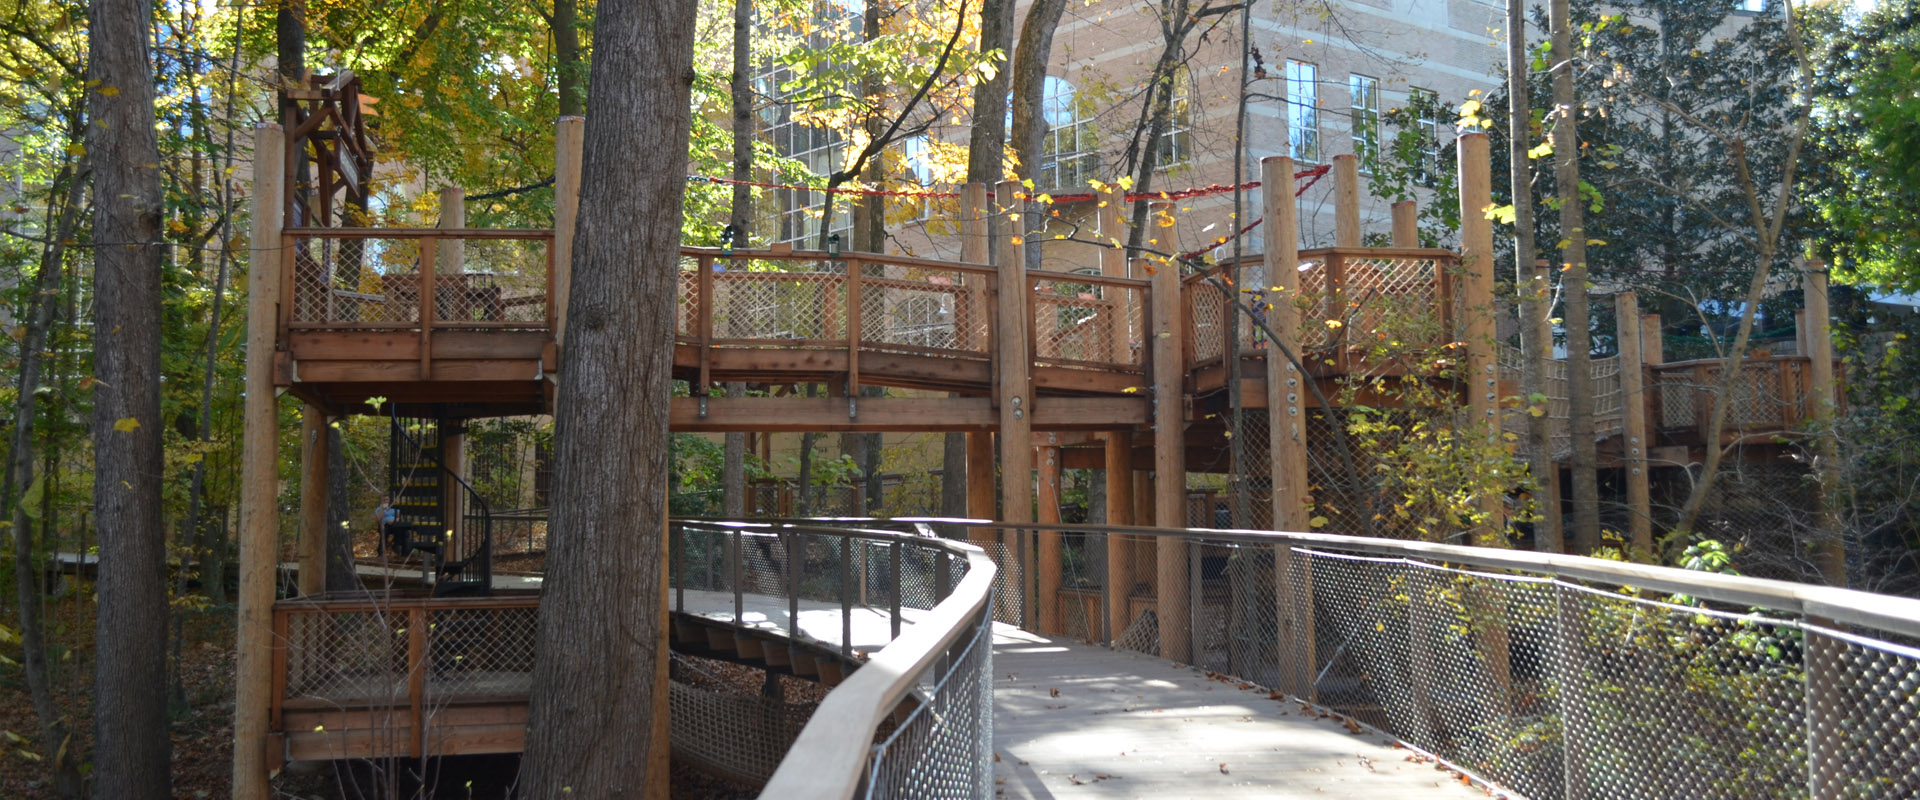 Fernbank Museum of Natural History - Play Area